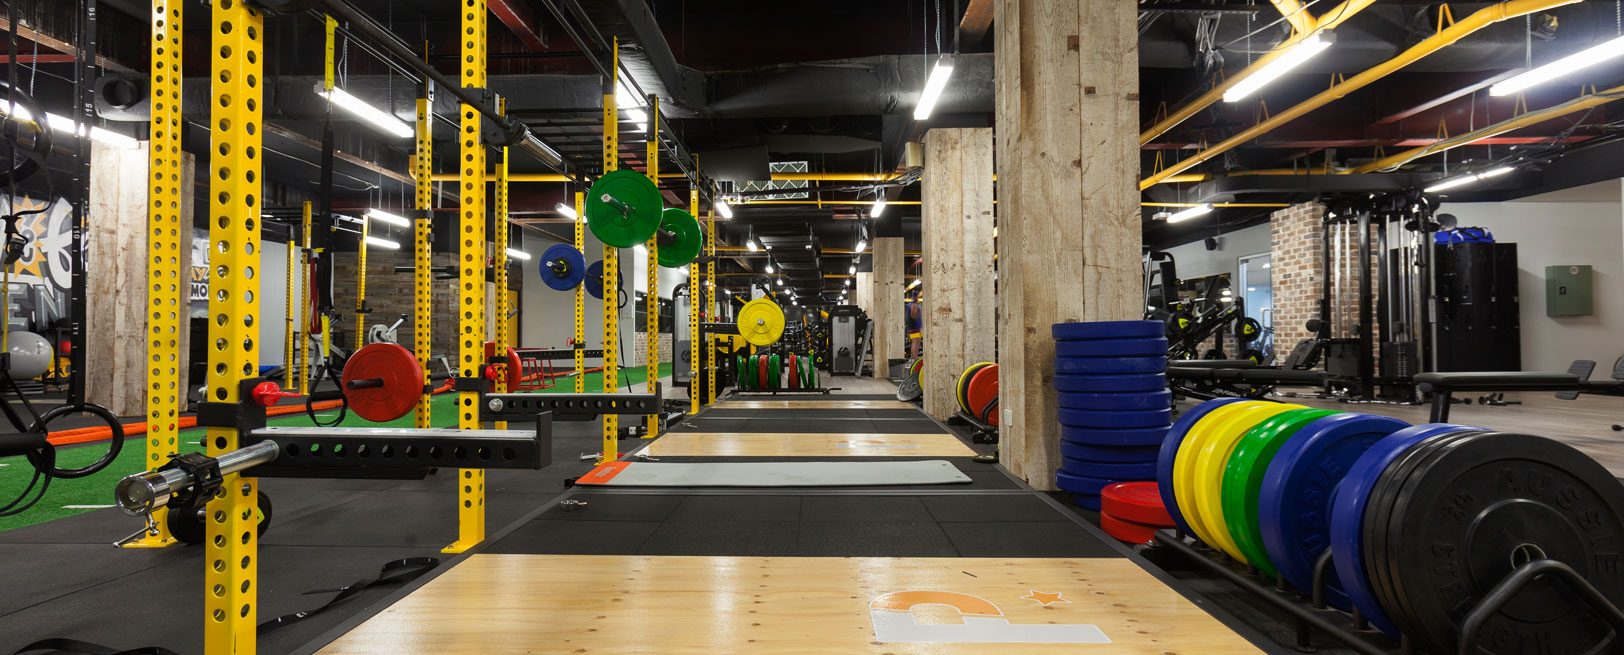 Marrickville's weight-training gym